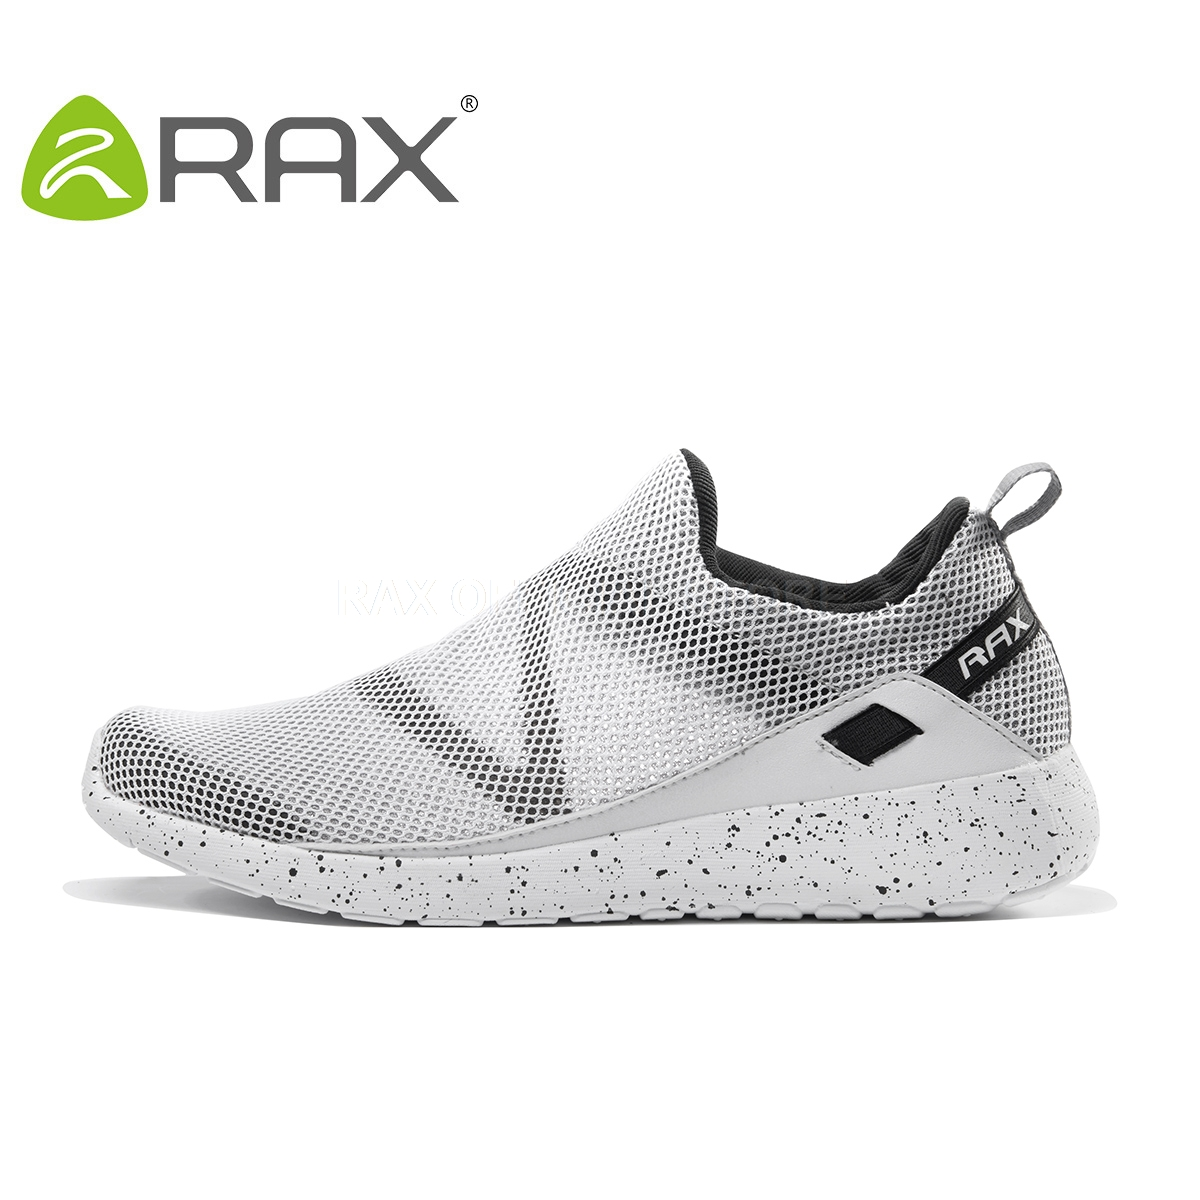 RAX Sports Shoes For Women Outdoor Breathable Women Running Shoes Women Sneakers Sport Running Shoes Jogging Training Shoes